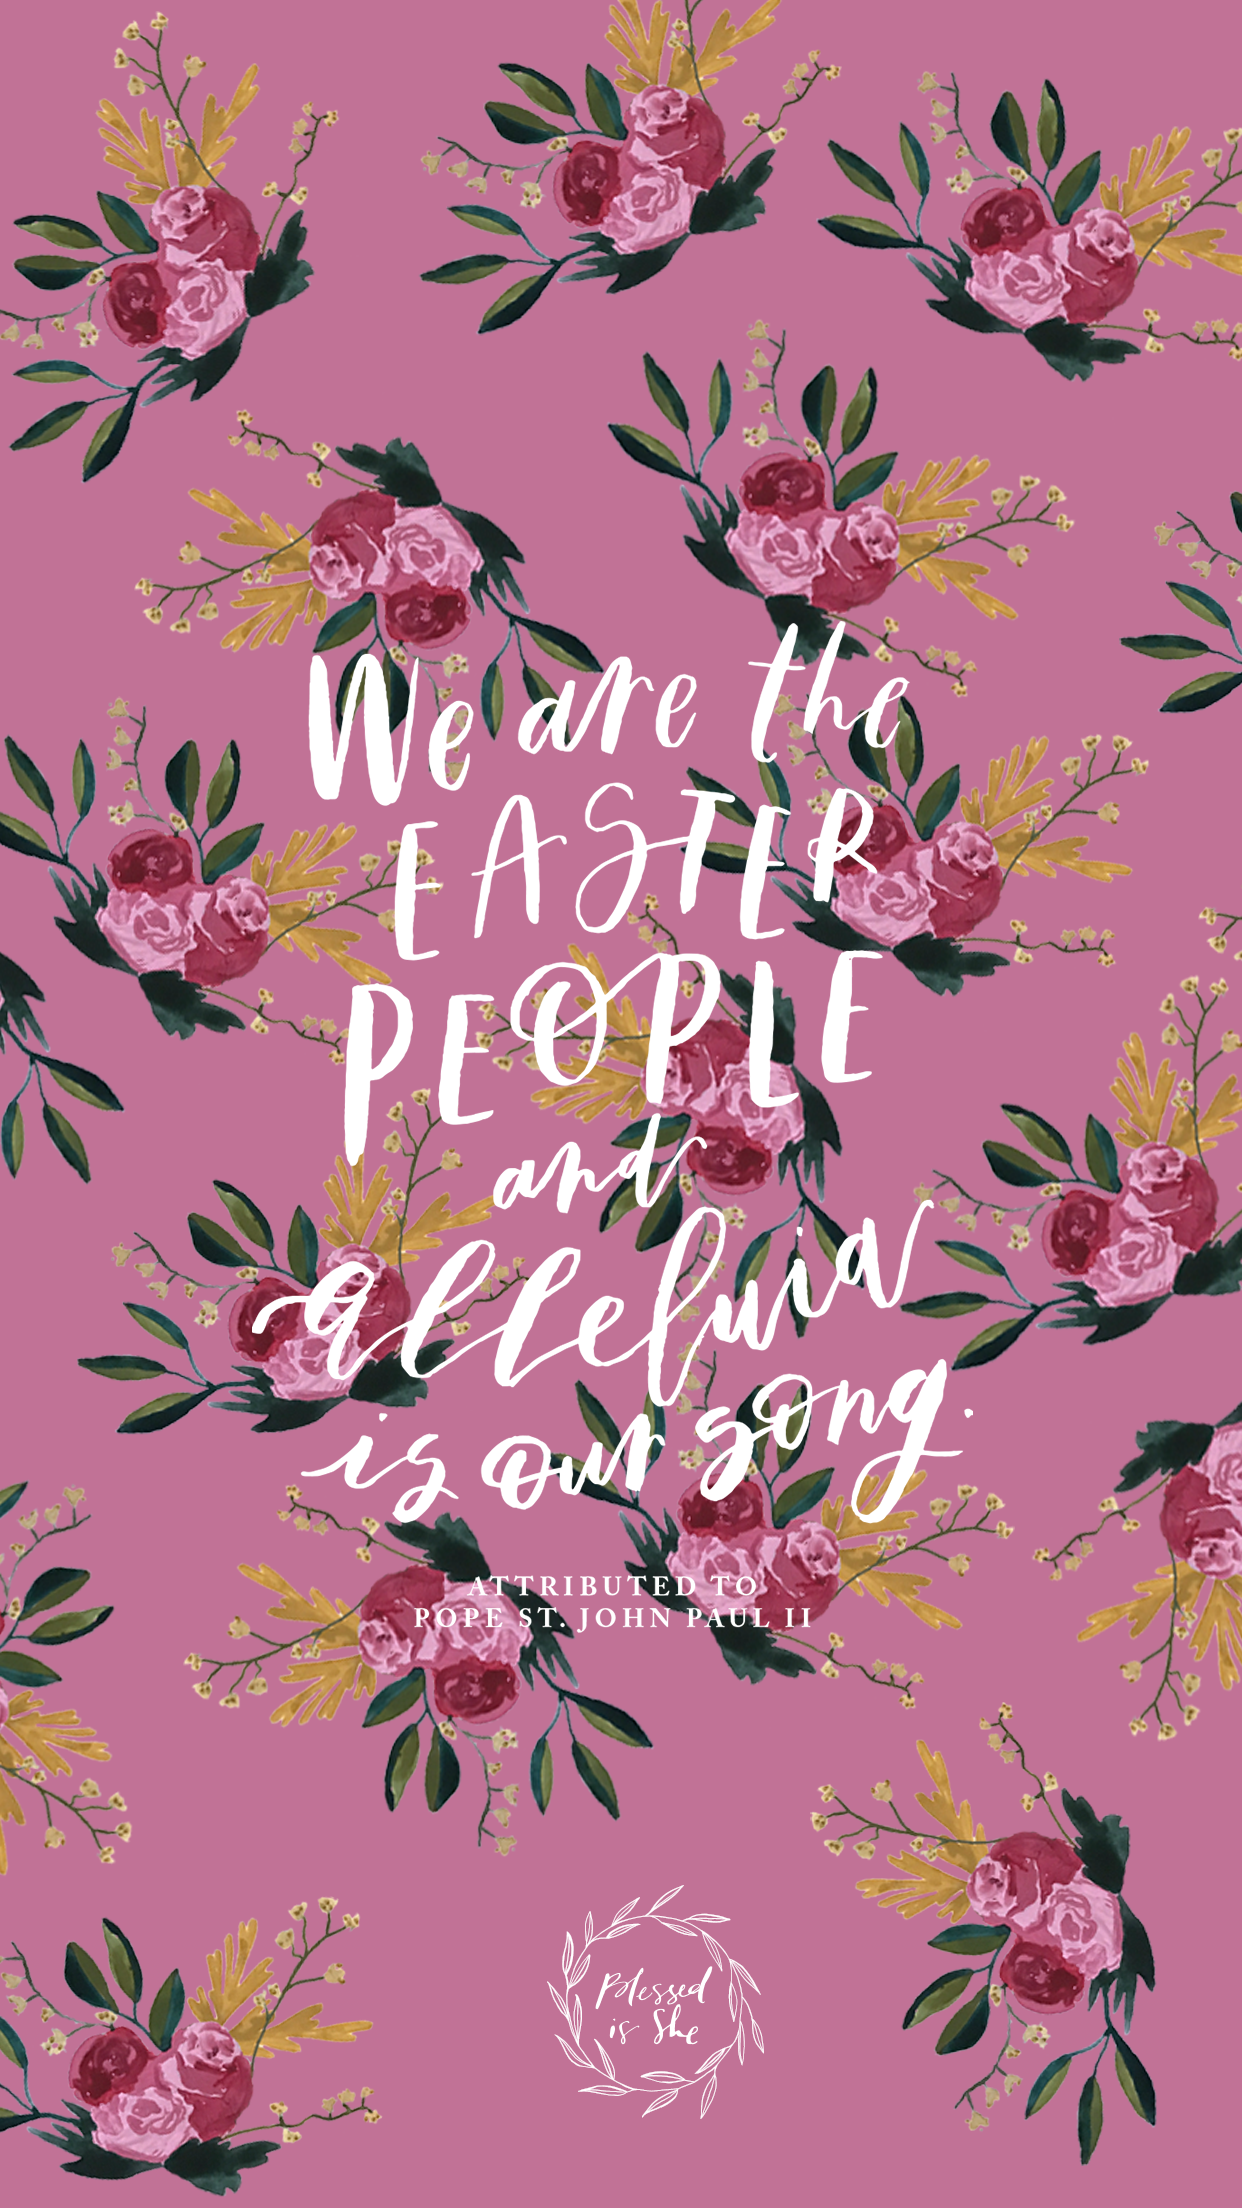 Great Wallpaper Bible Verse Artsy - 541ae16c39c46640339aa98d6ed2e55d  Picture_626651.png